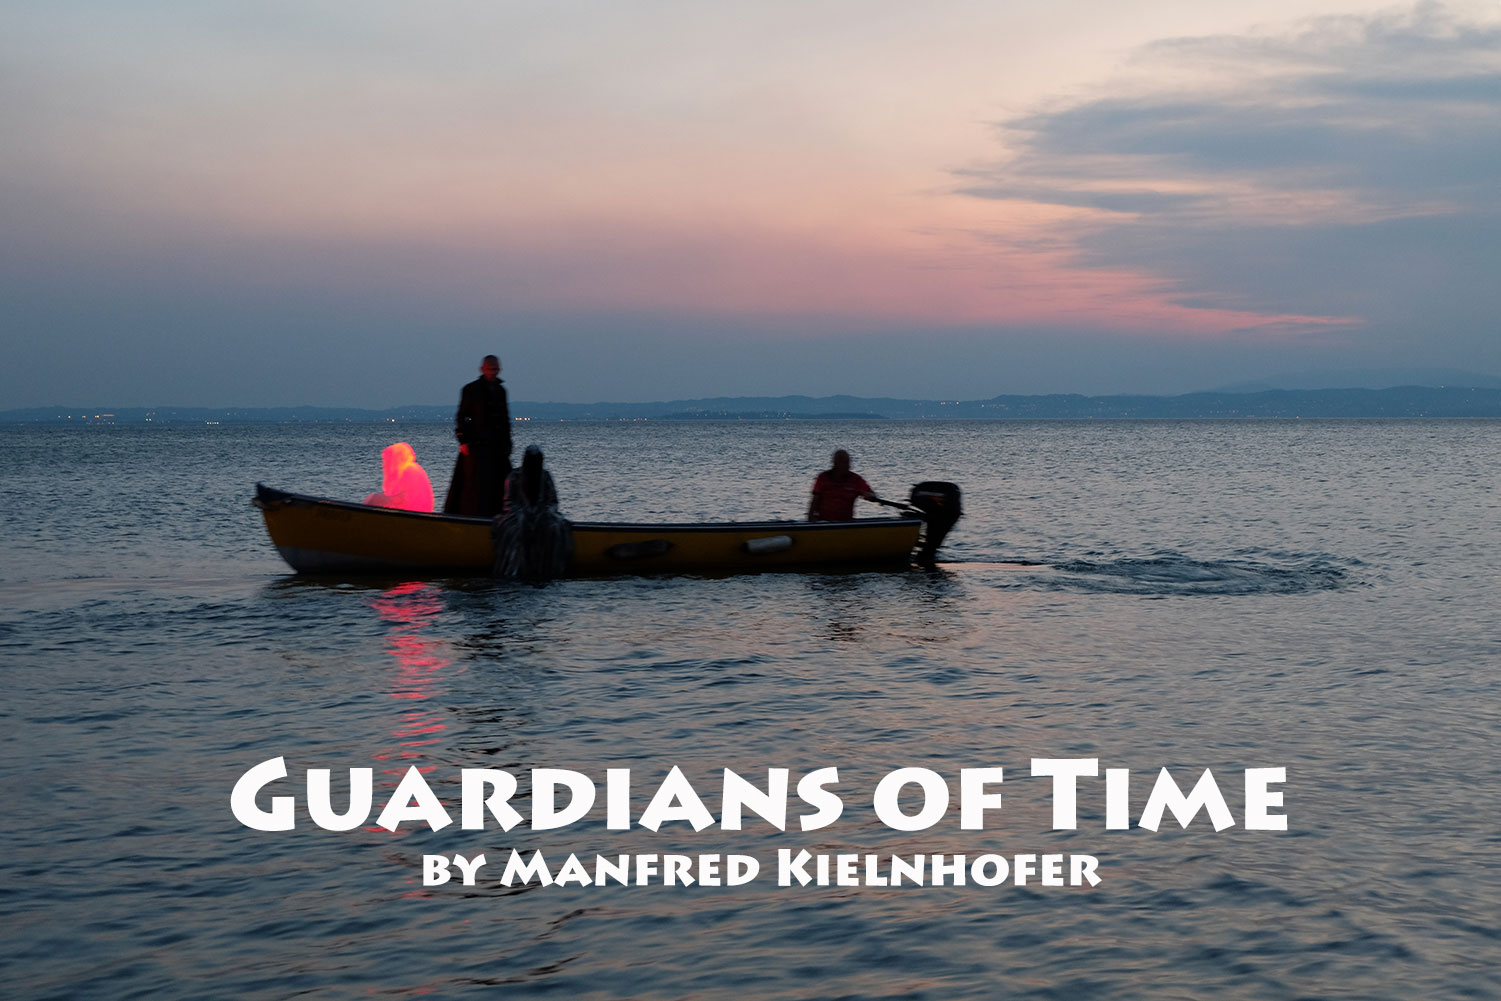 lazise-largo-de-guarda-italia--kouba-designkooperative-austria-guardians-of-time-manfred-kili-kielnhofer-contemporary-art-design-arts-arte-sculpture-theater-foto-film-performnce-avalon-ferryman-3790